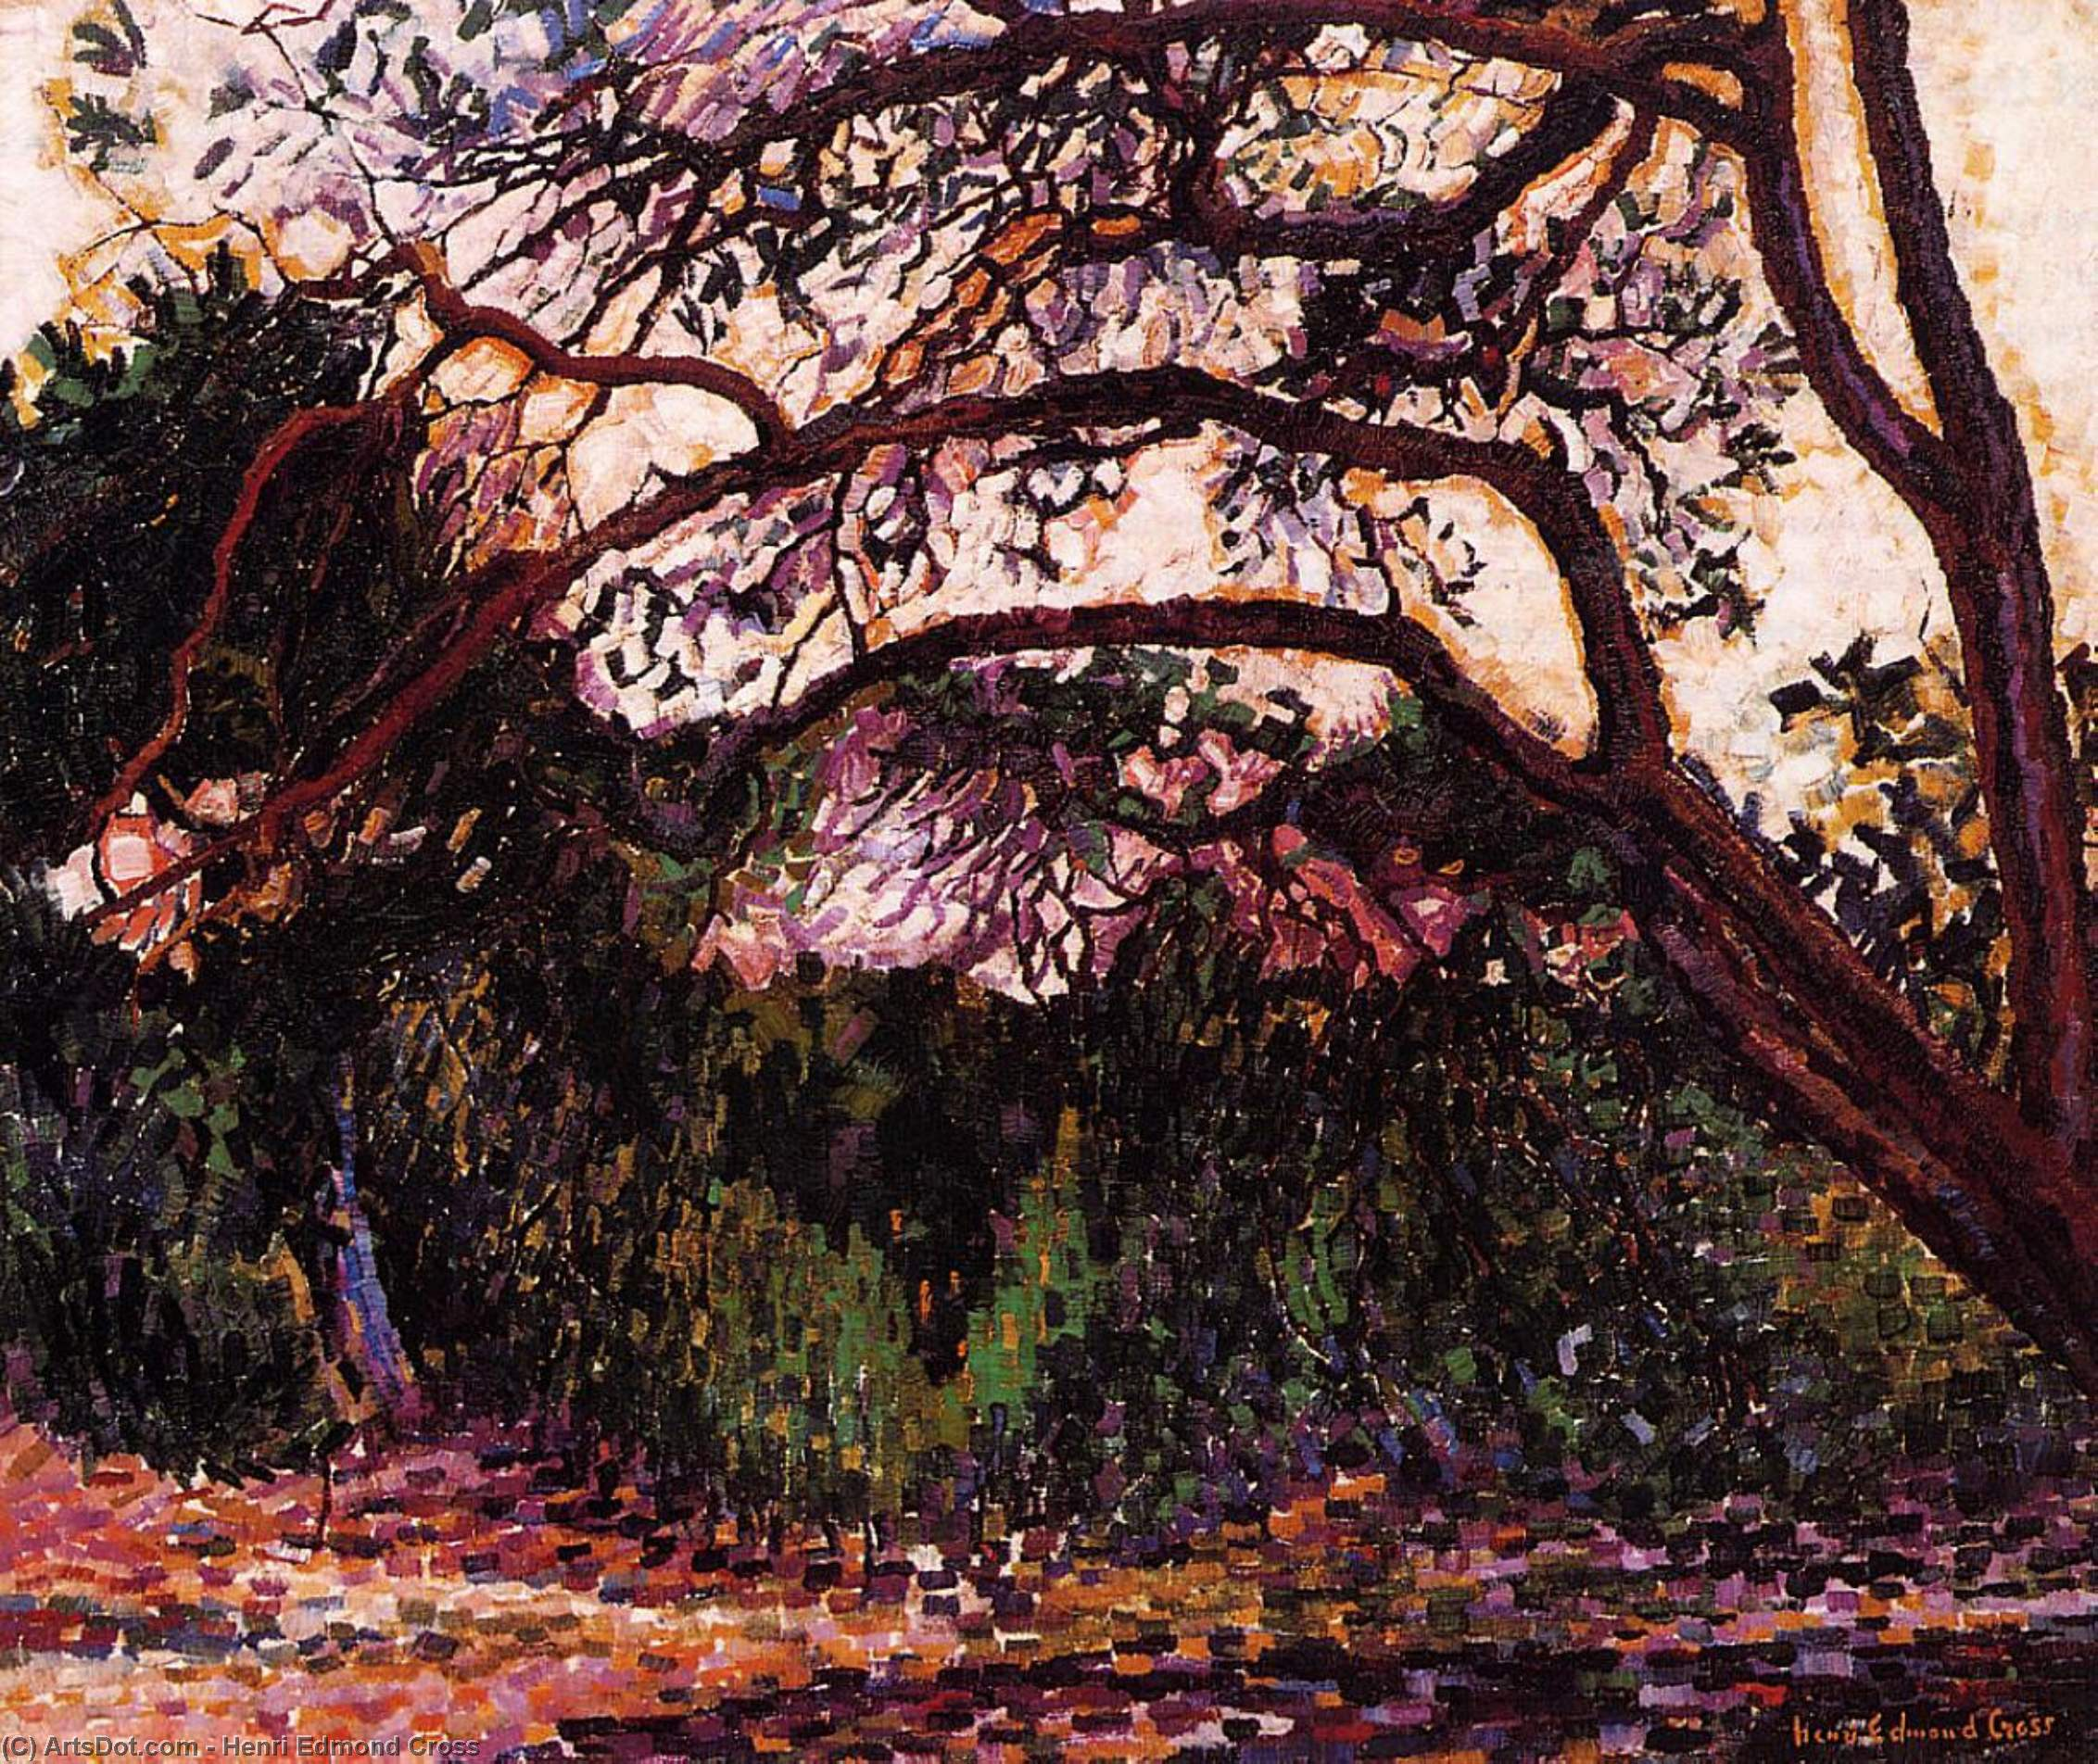 Woded 风景, 油画 通过 Henri Edmond Cross (1856-1910, France)